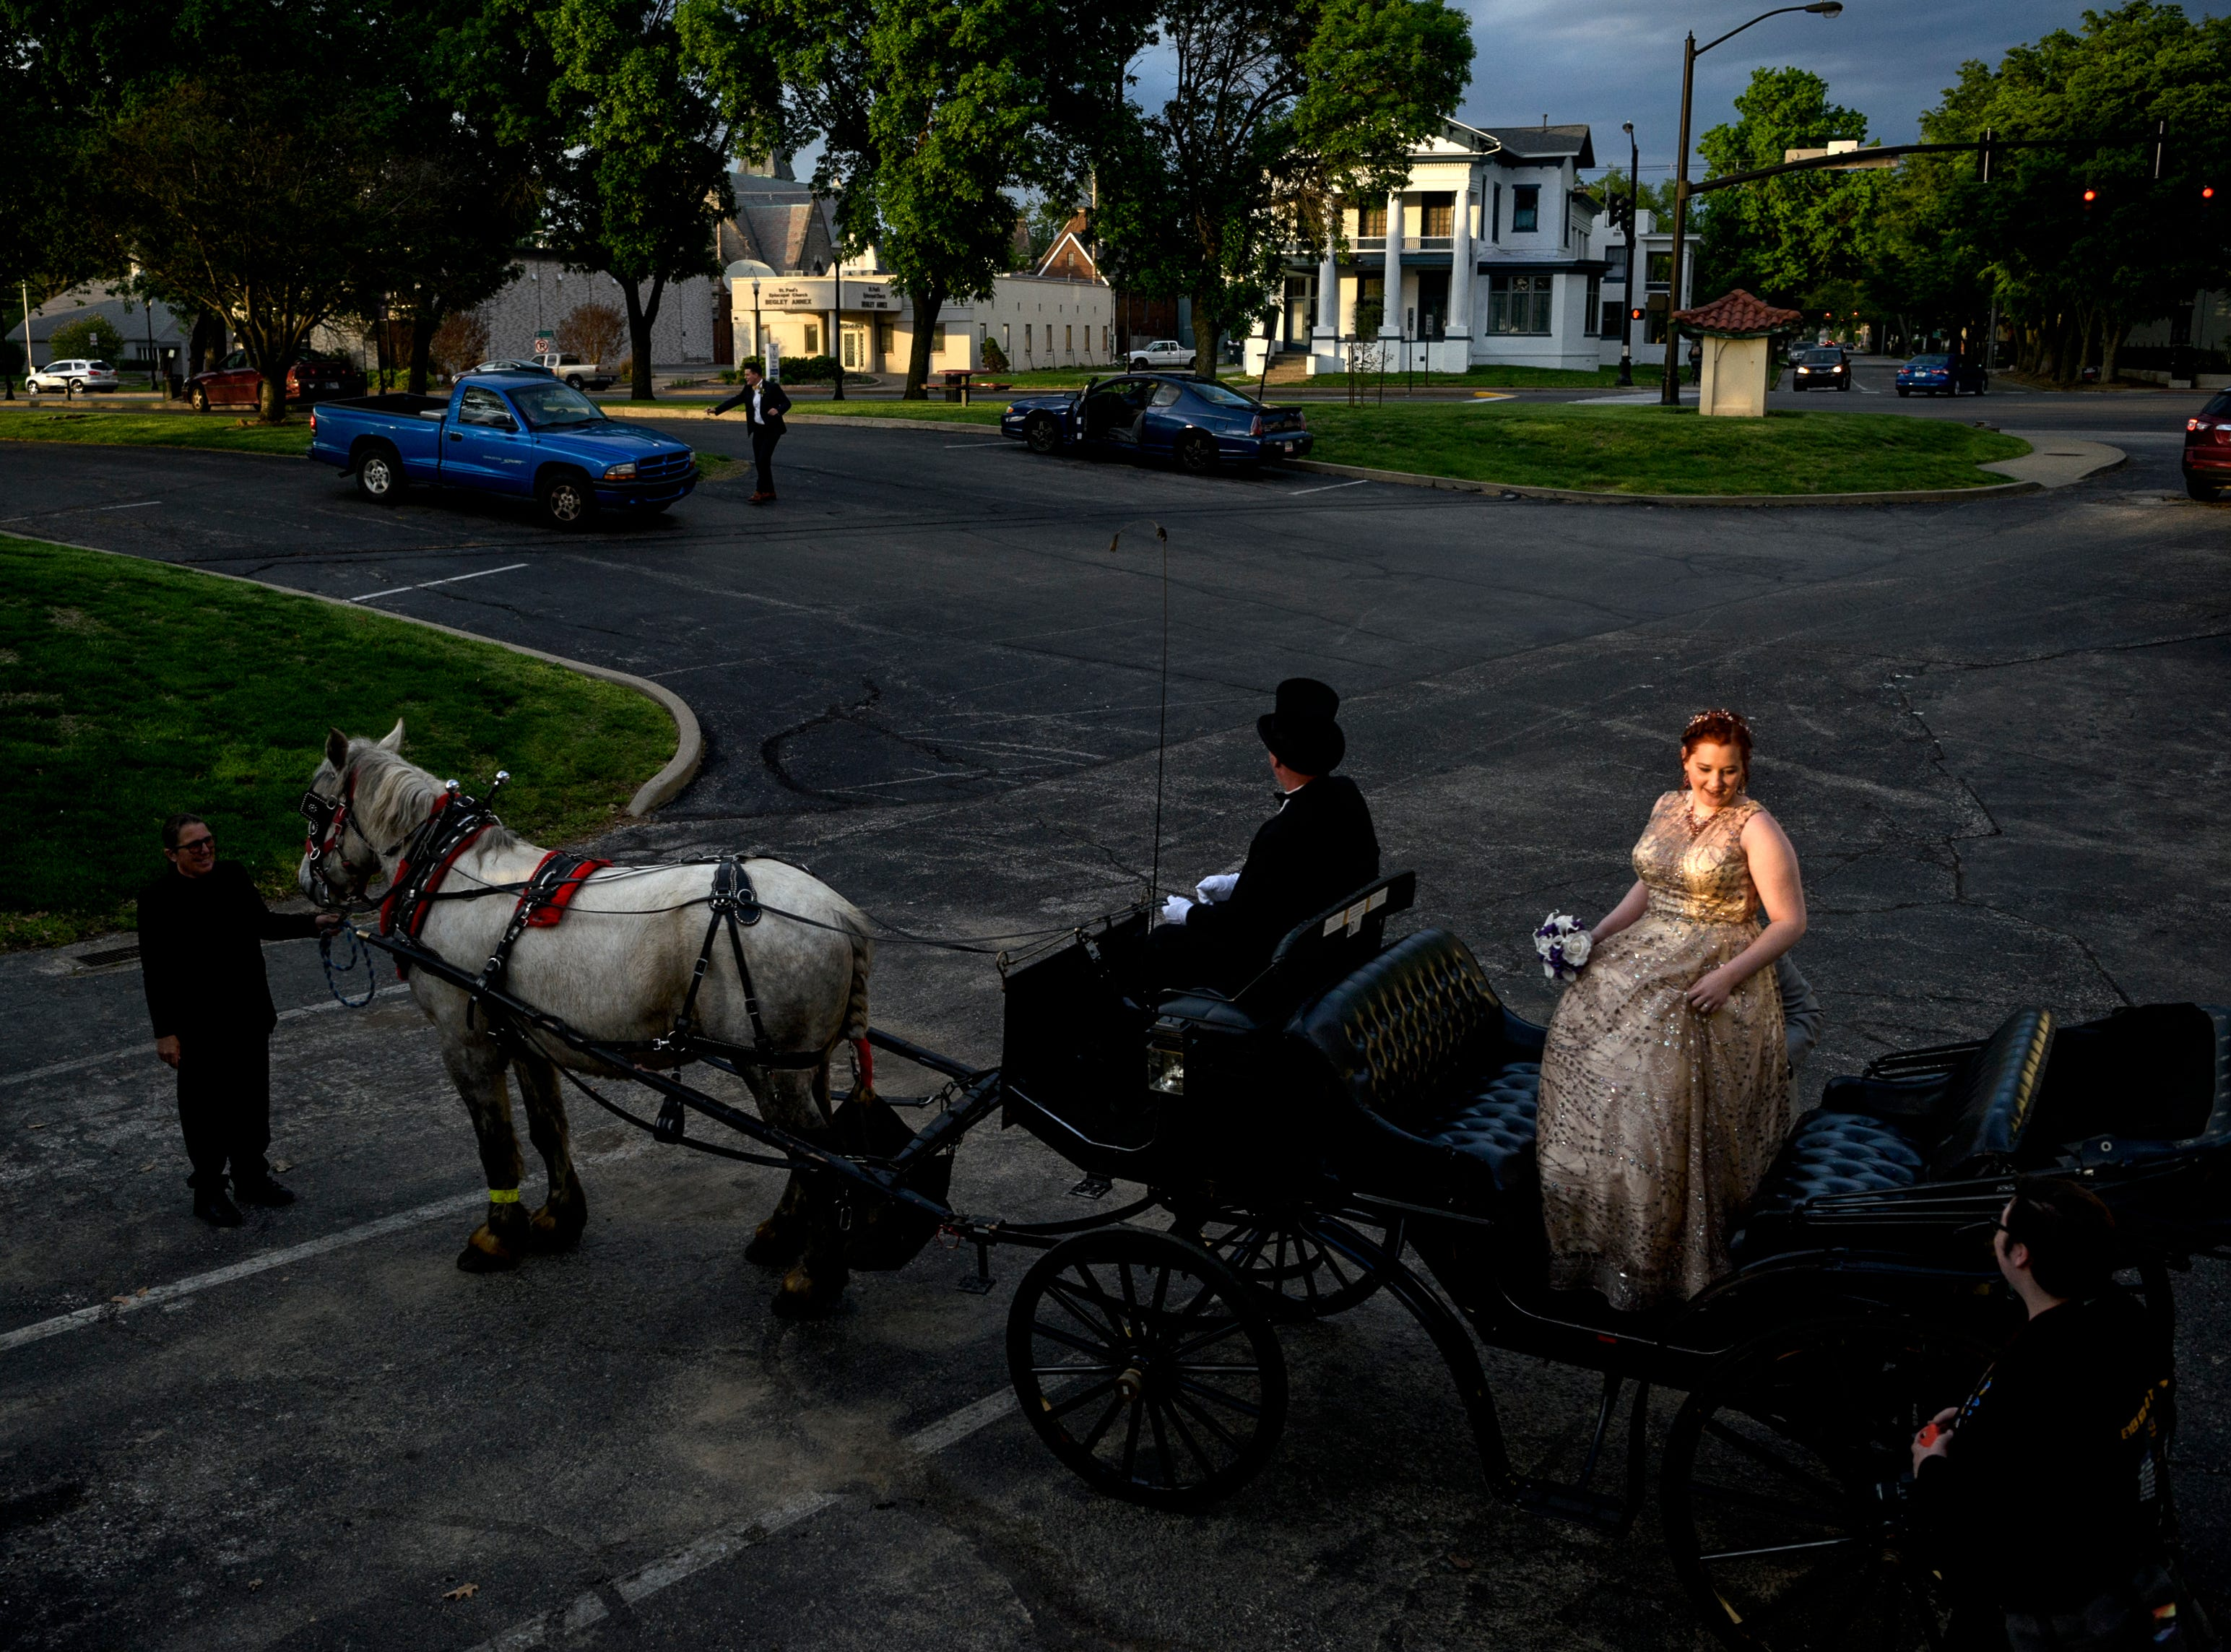 Castle High School student Rachel Landrum, center right, gets back on a Horseshoe Bend Carriage Co. carriage after making a pit stop to take prom pictures by the river with her boyfriend Conner Gorman, not pictured, and CHS student photographer Randy Cox, bottom right, in downtown Evansville, Ind., Saturday, April 27, 2019. Randy, center left, and Sheila O'Risky, far left, lead the couple and photographer through downtown Evansville before taking them to their prom at Old National Events Plaza.